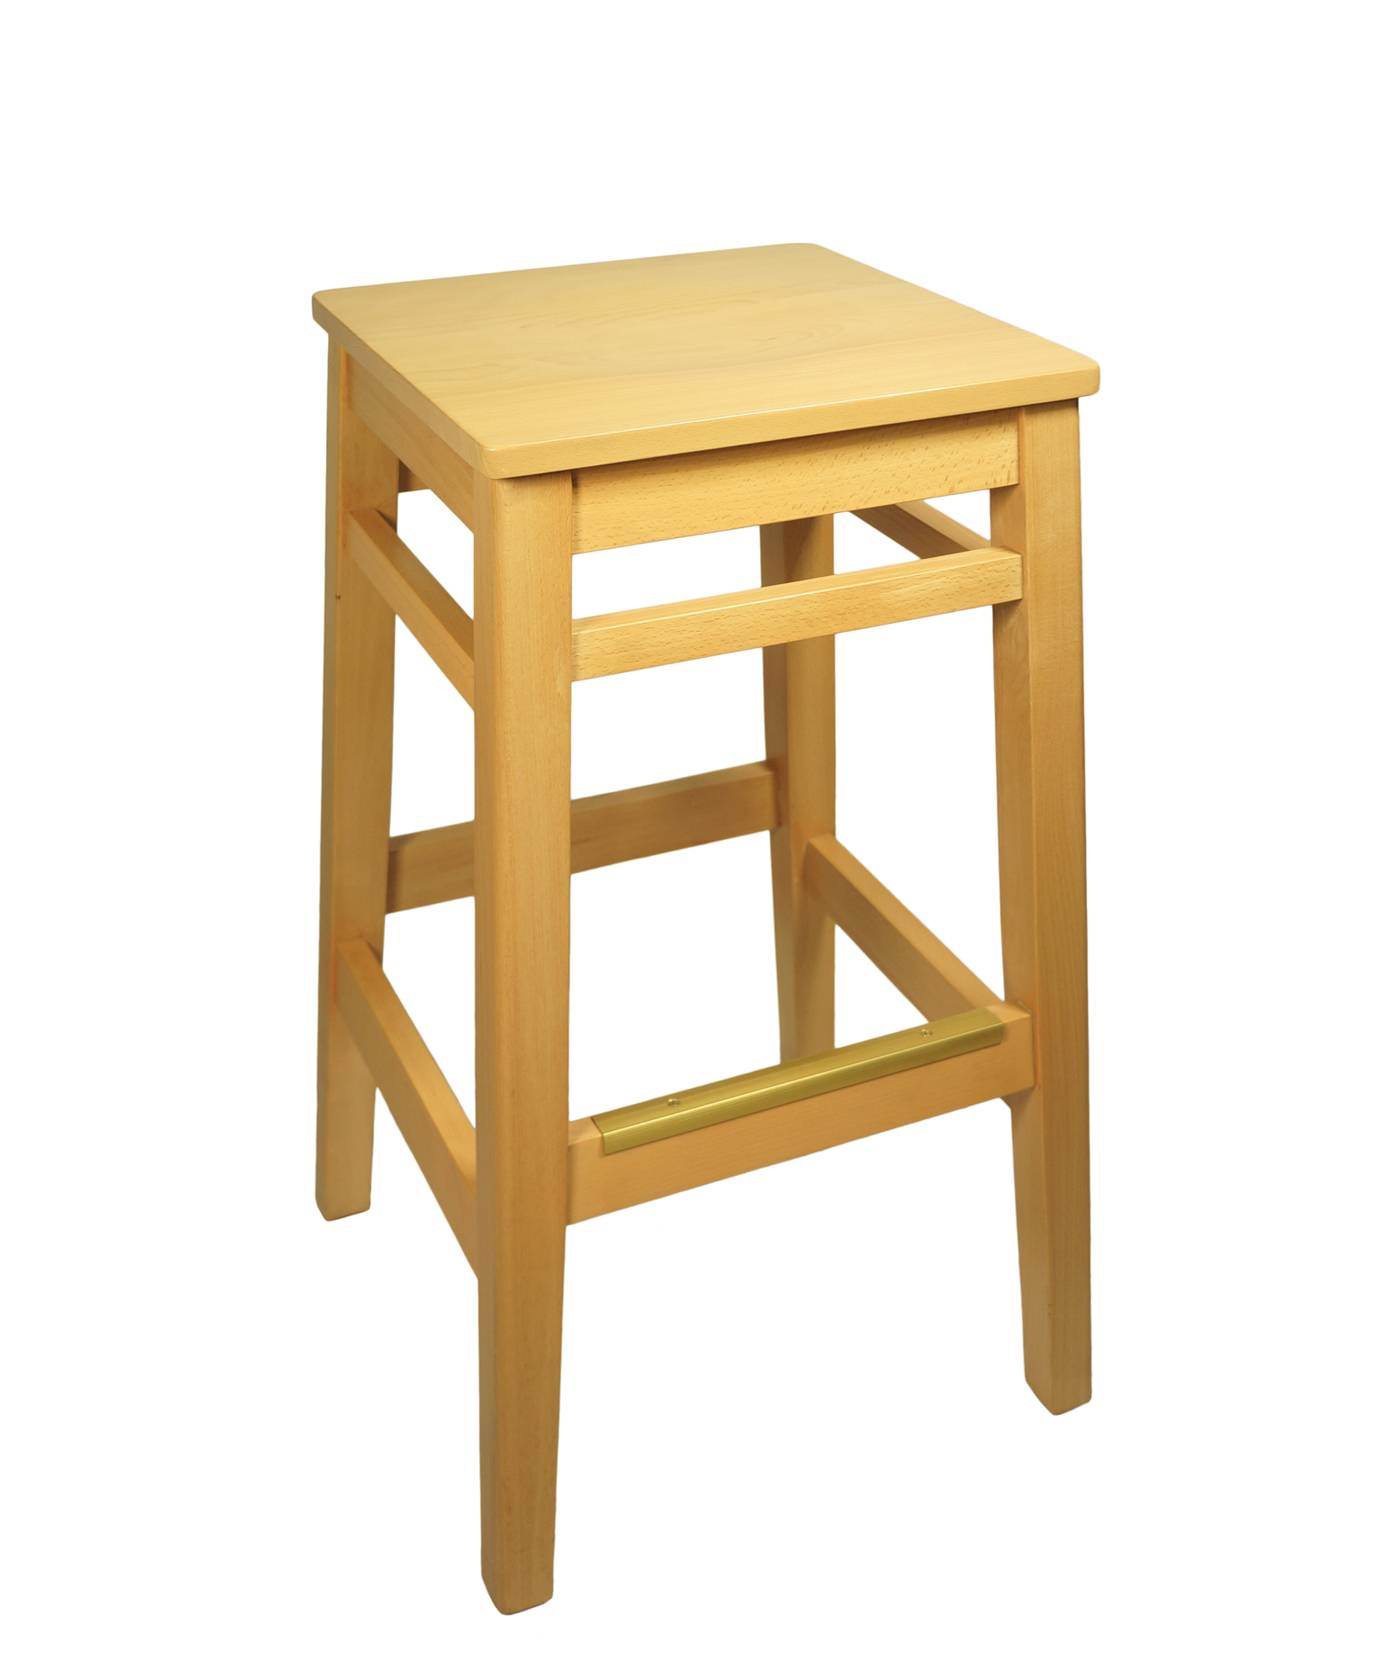 Superb Backless Wood Frame Square Seat Stool Squirreltailoven Fun Painted Chair Ideas Images Squirreltailovenorg